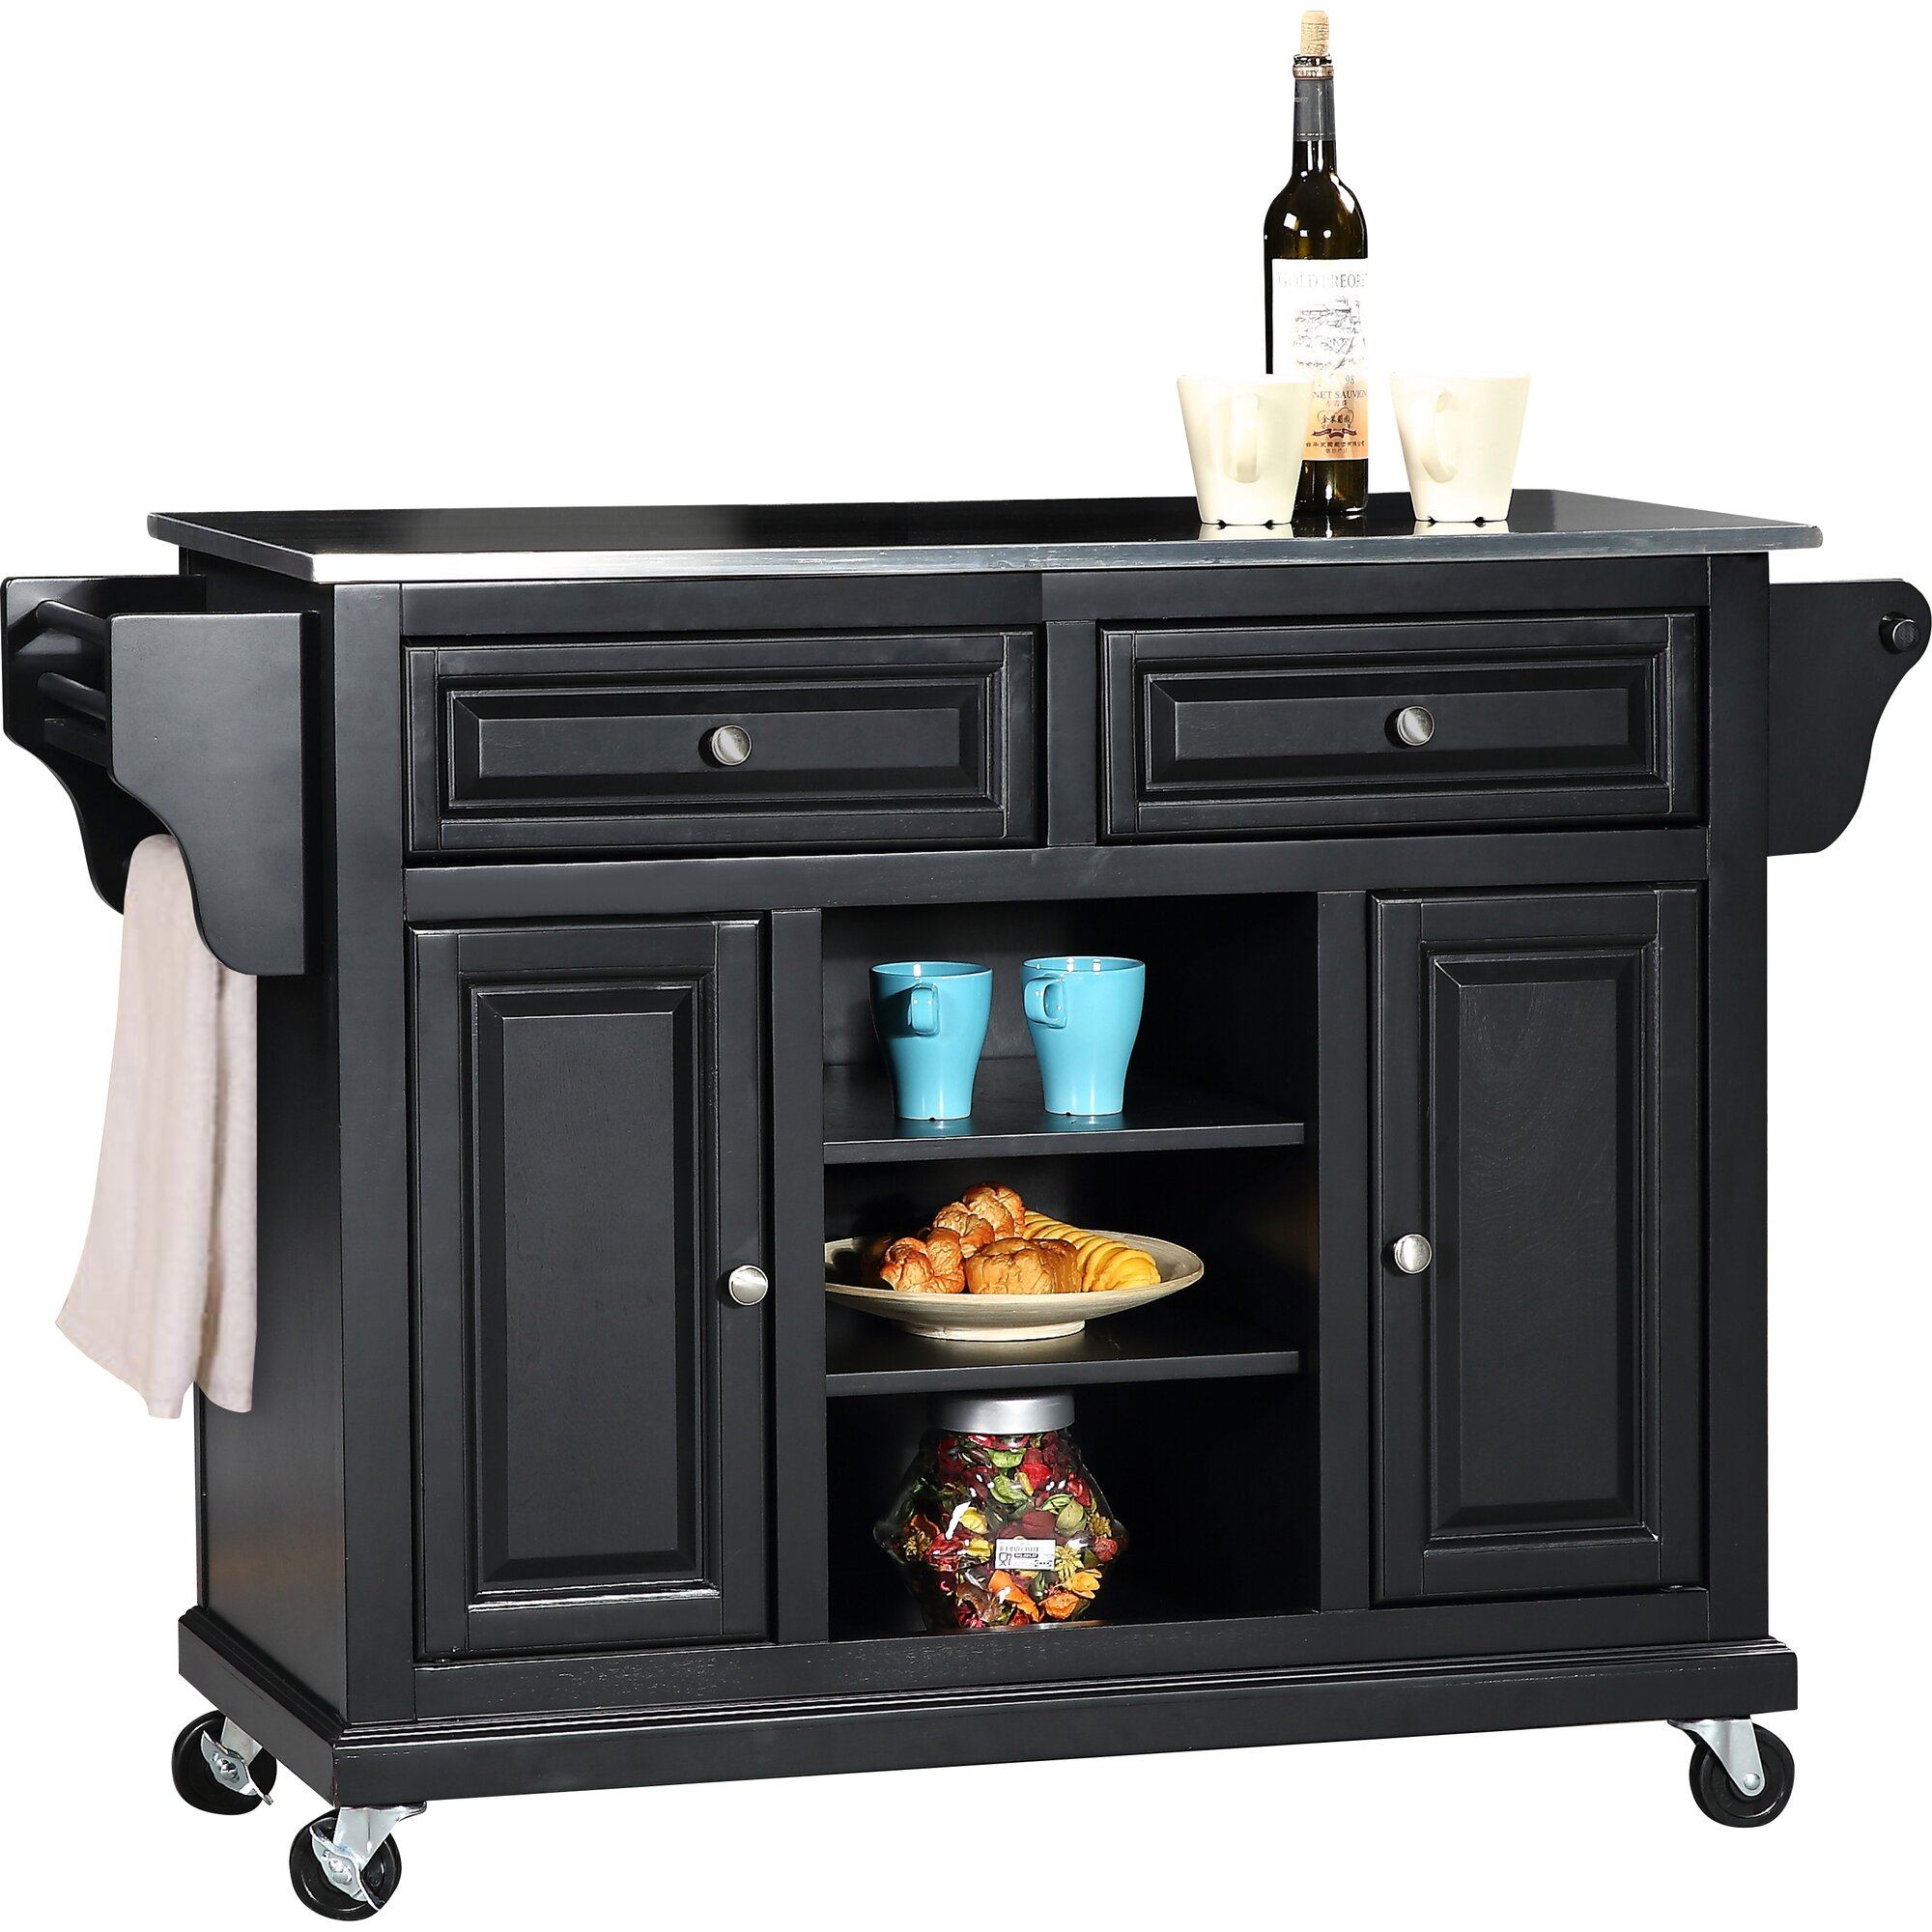 Wildon Home ® Kitchen Island With Stainless Steel Top